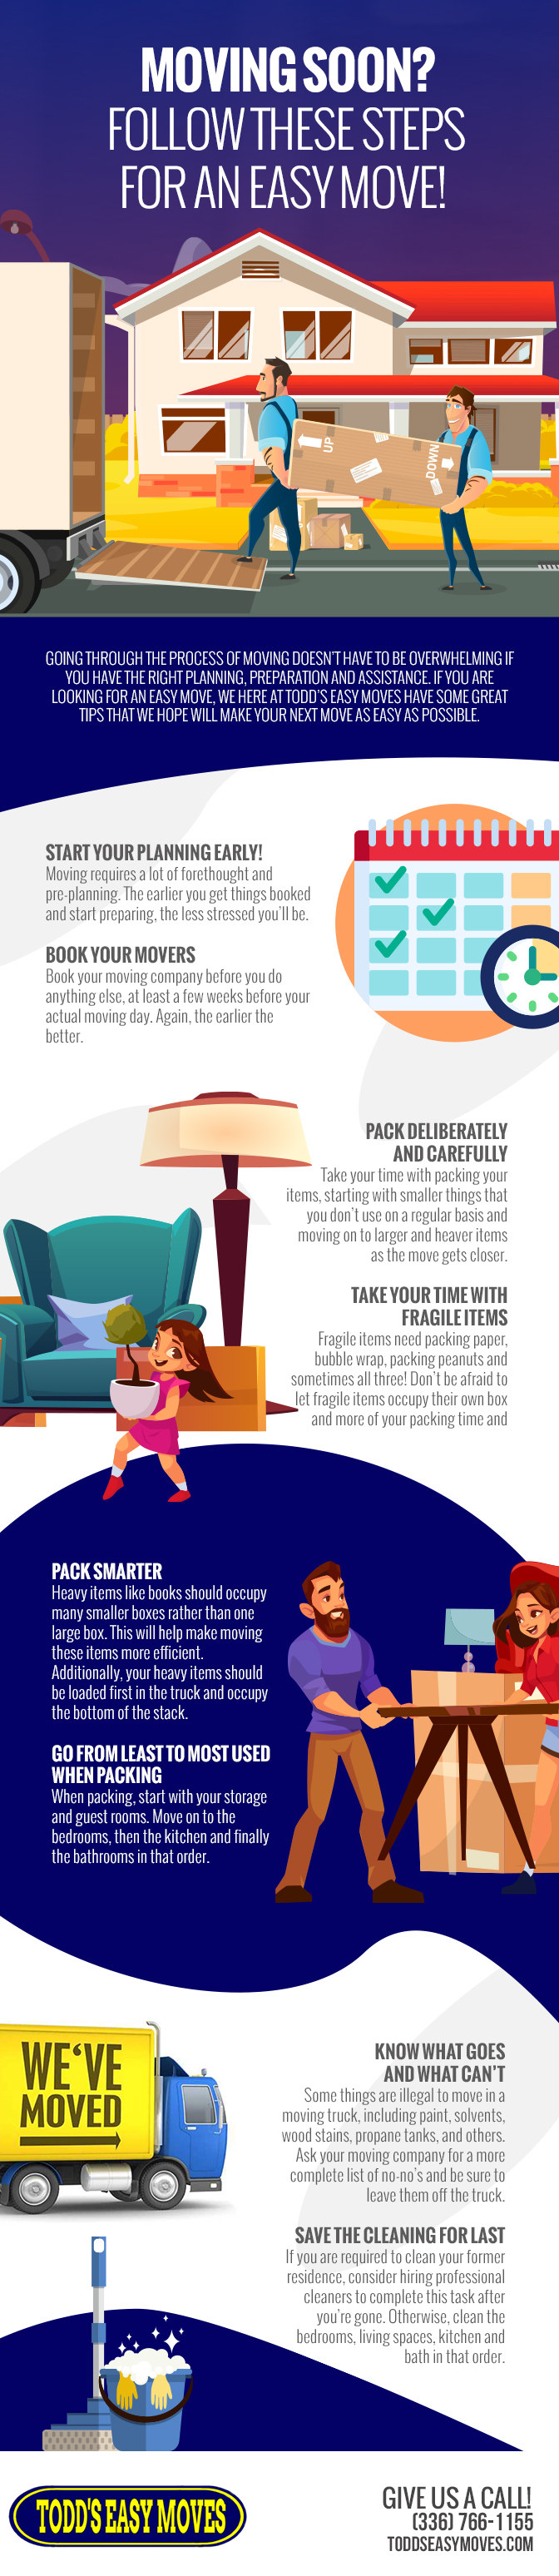 Moving Soon? Follow These Steps for an Easy Move! [infographic]